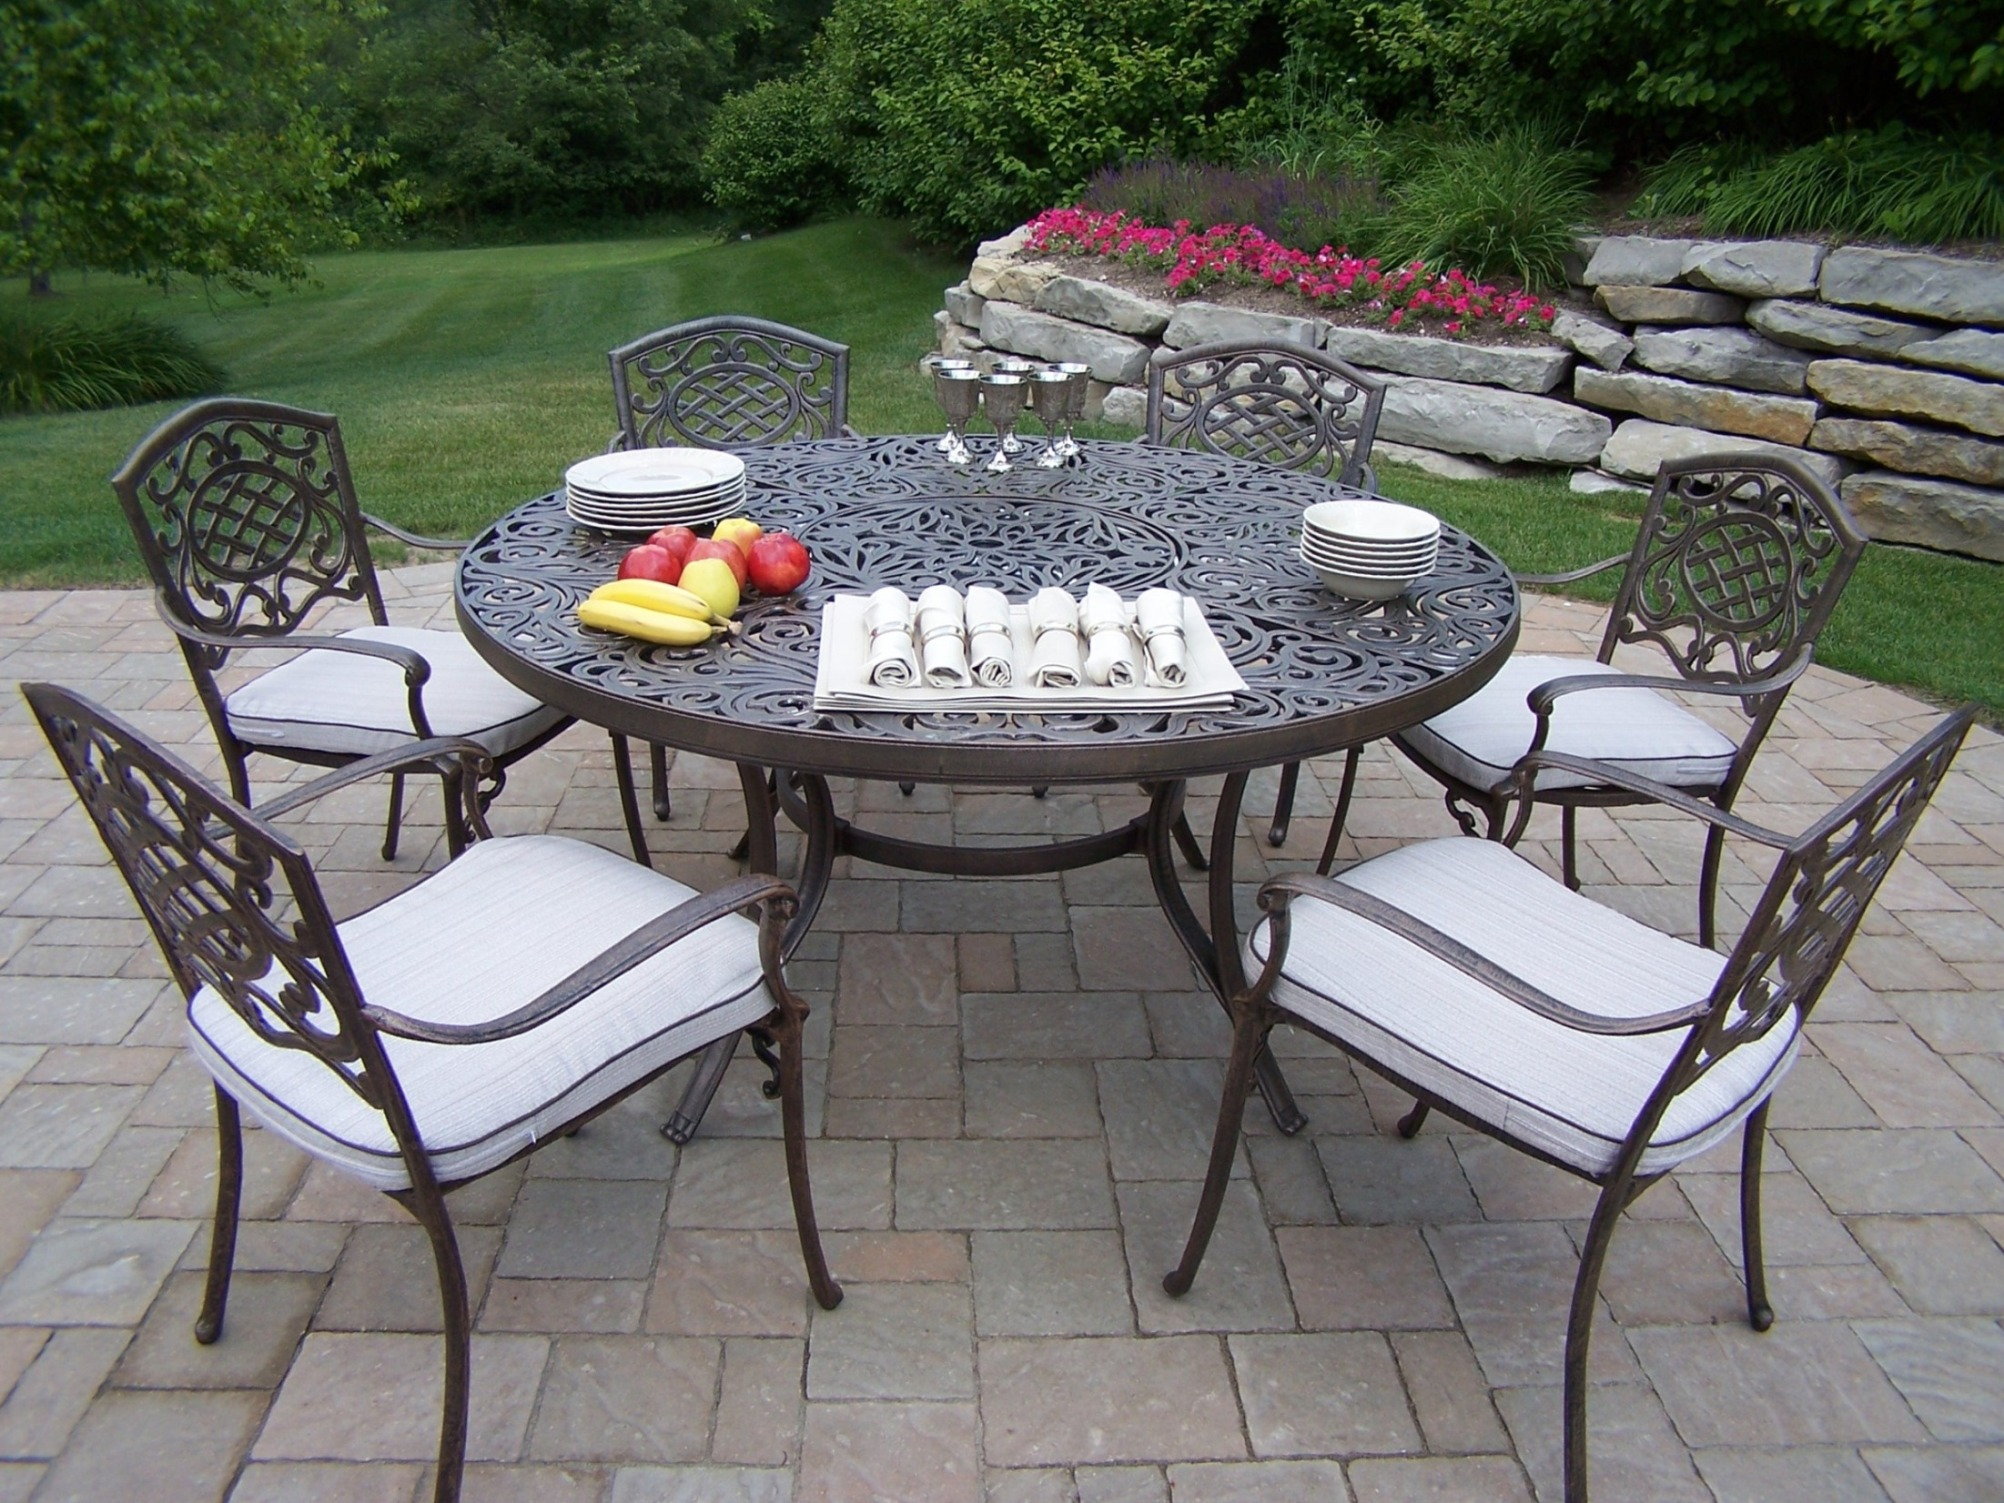 sears patio furniture dining sets Patio Dining Sets | Outdoor Dining Chairs - Sears